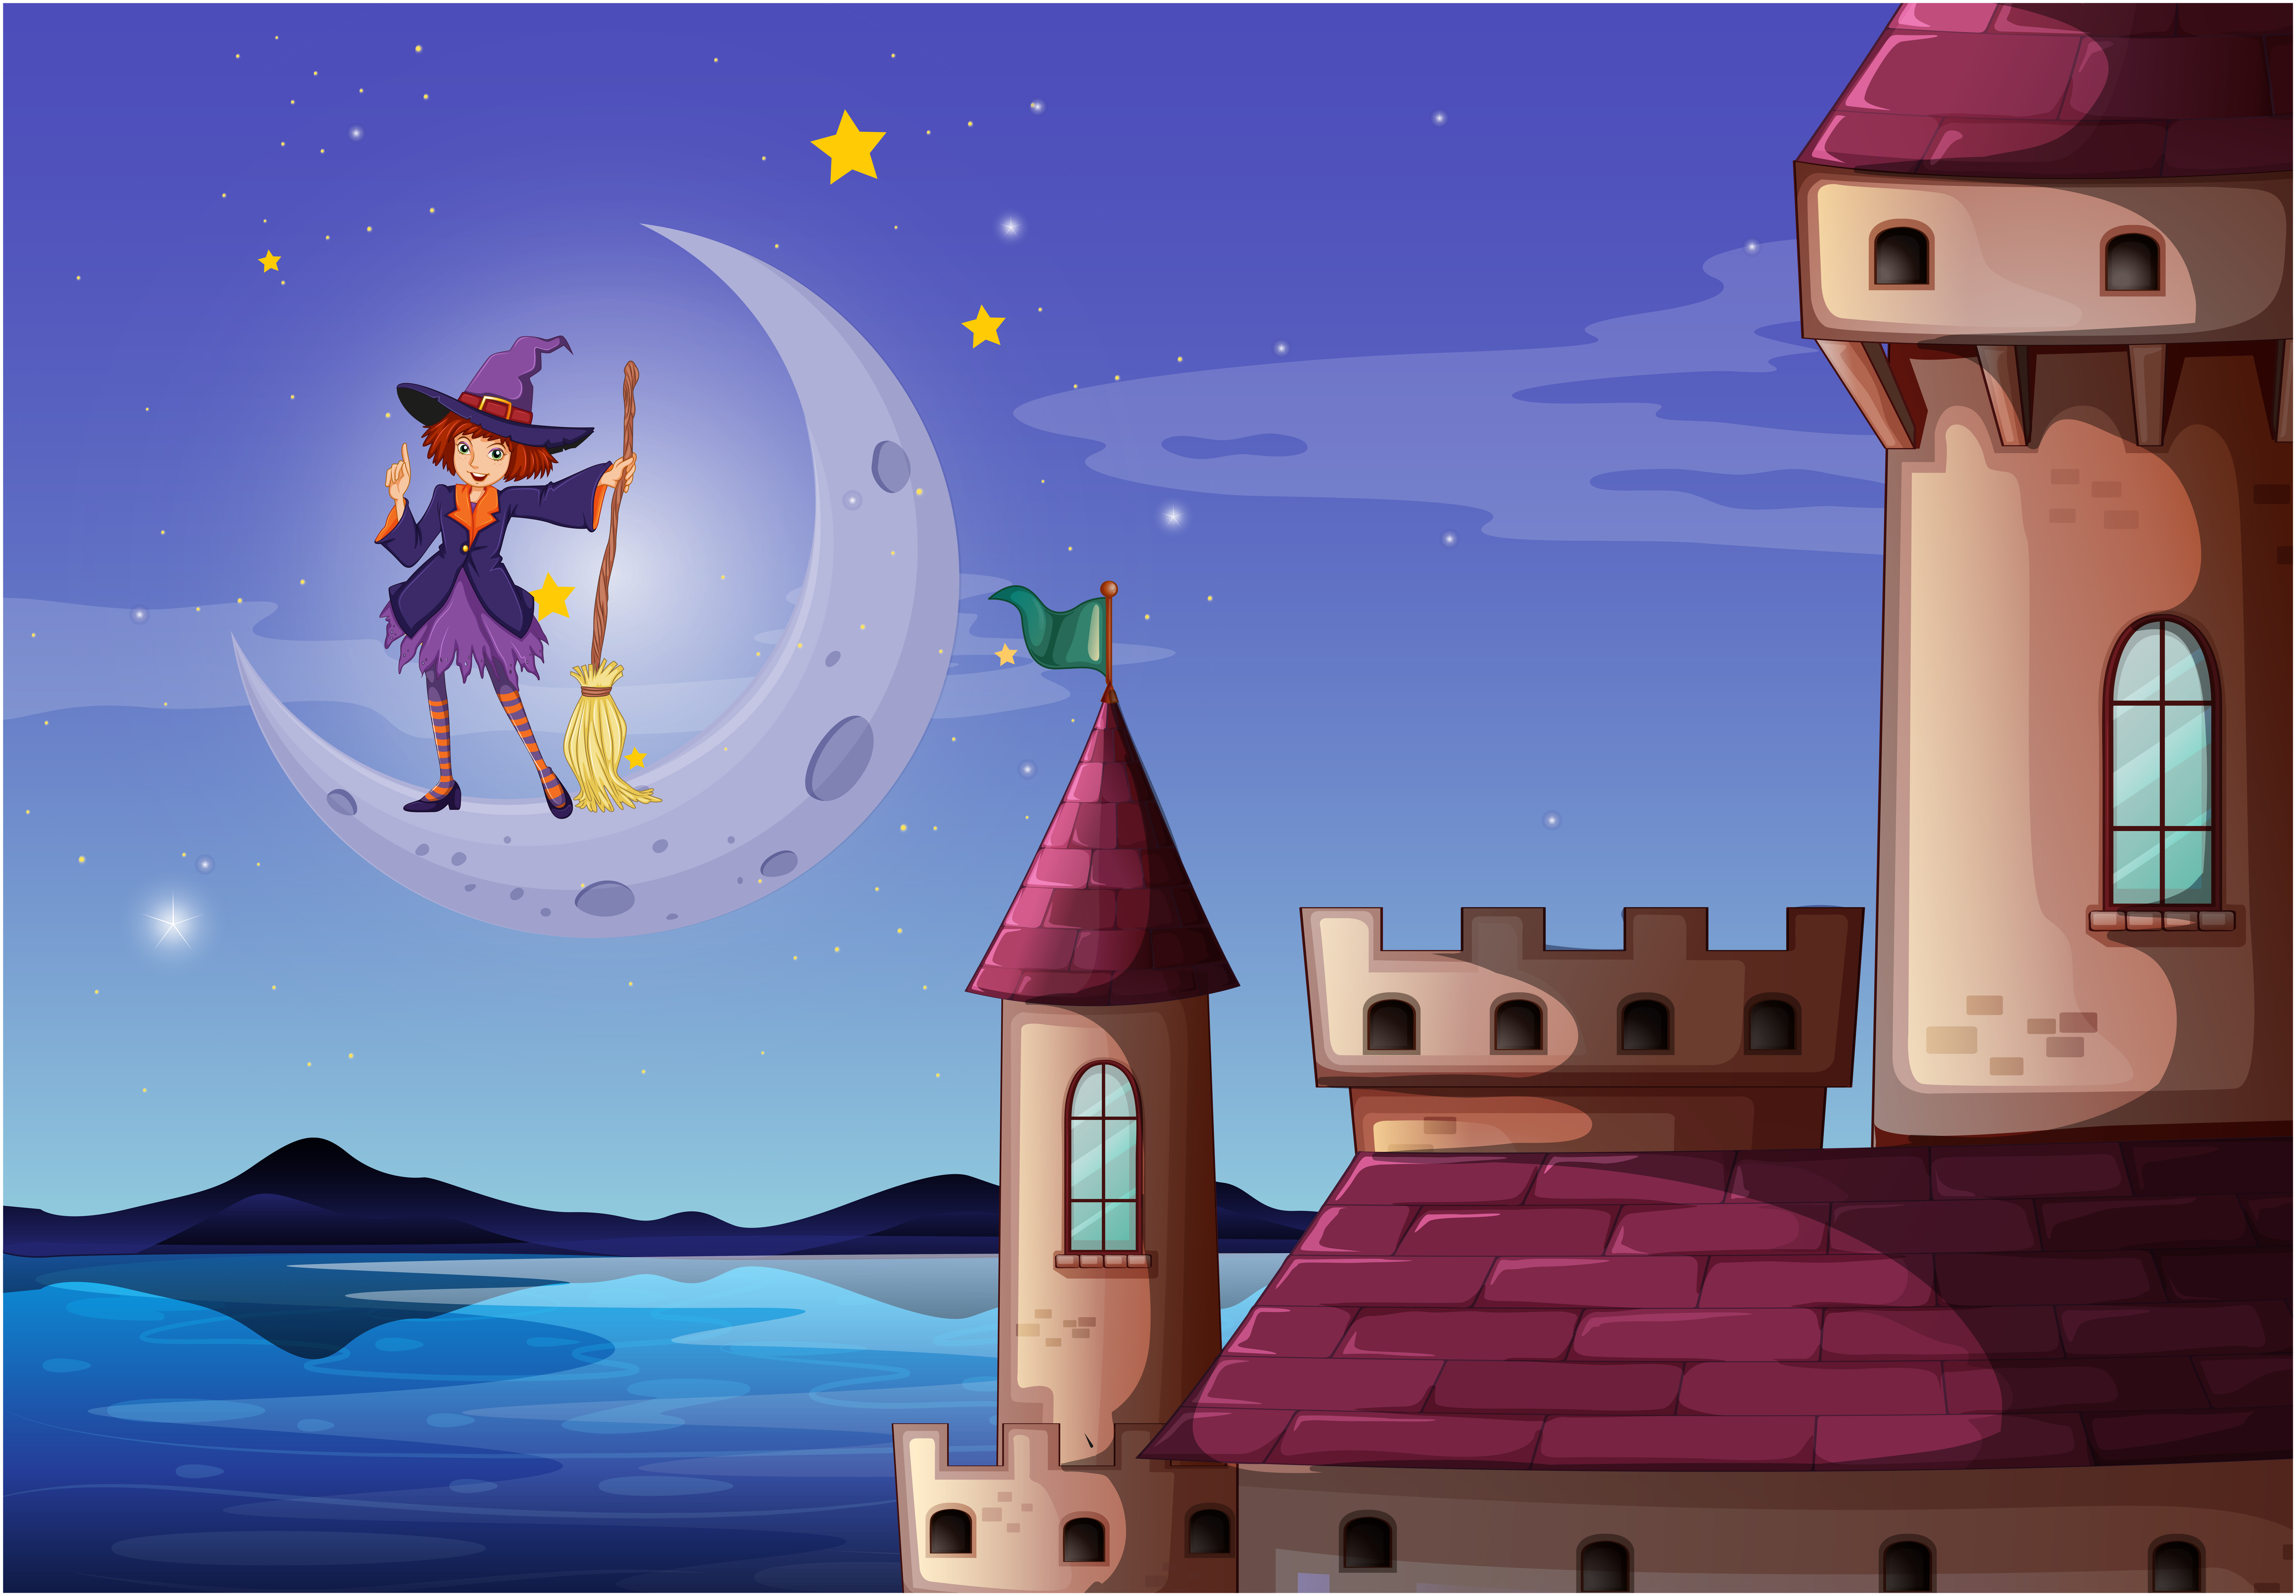 A Witch With A Broomstick Standing Near The Castle